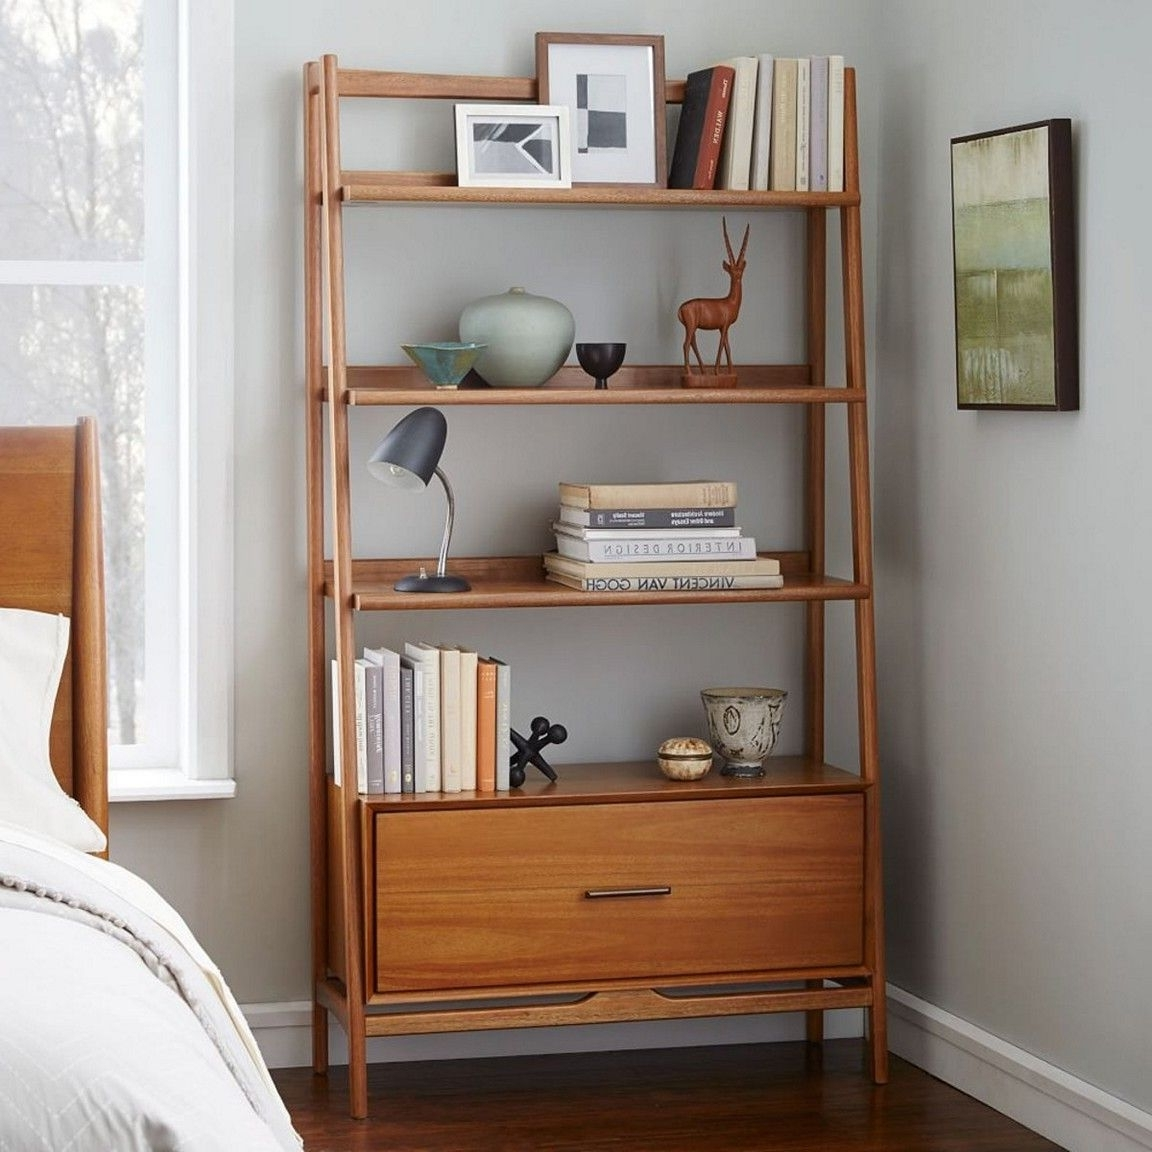 Most Recent Midcentury Bookcases For 20+ Beautiful Vintage Mid Century Modern Bedroom Design Ideas (View 9 of 15)